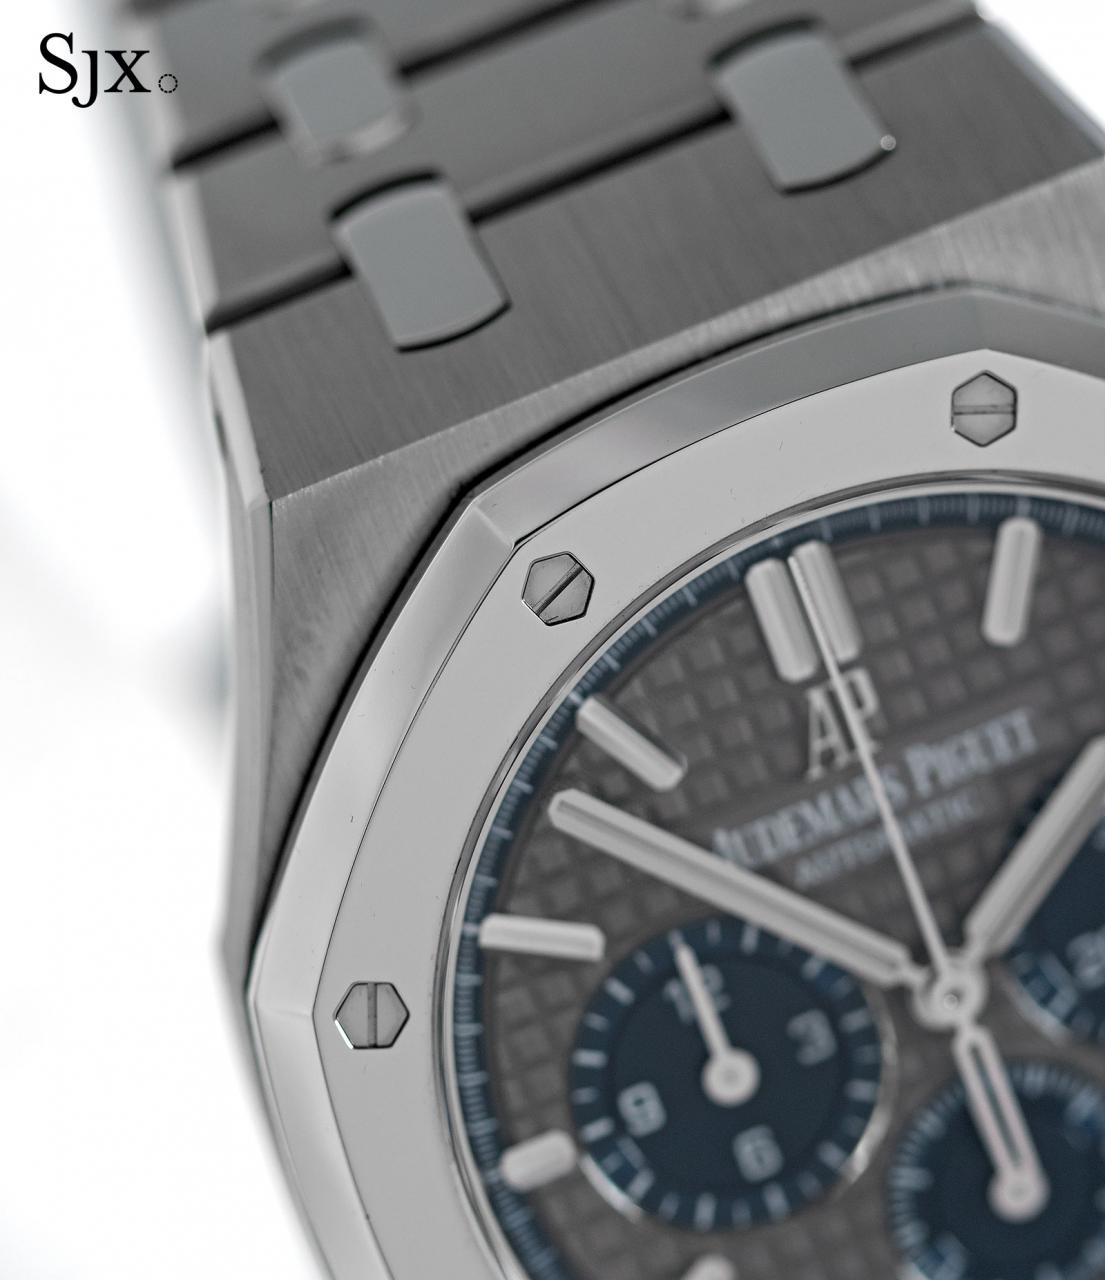 Audemars Piguet Royal Oak Chronograph Titanium Platinum 2